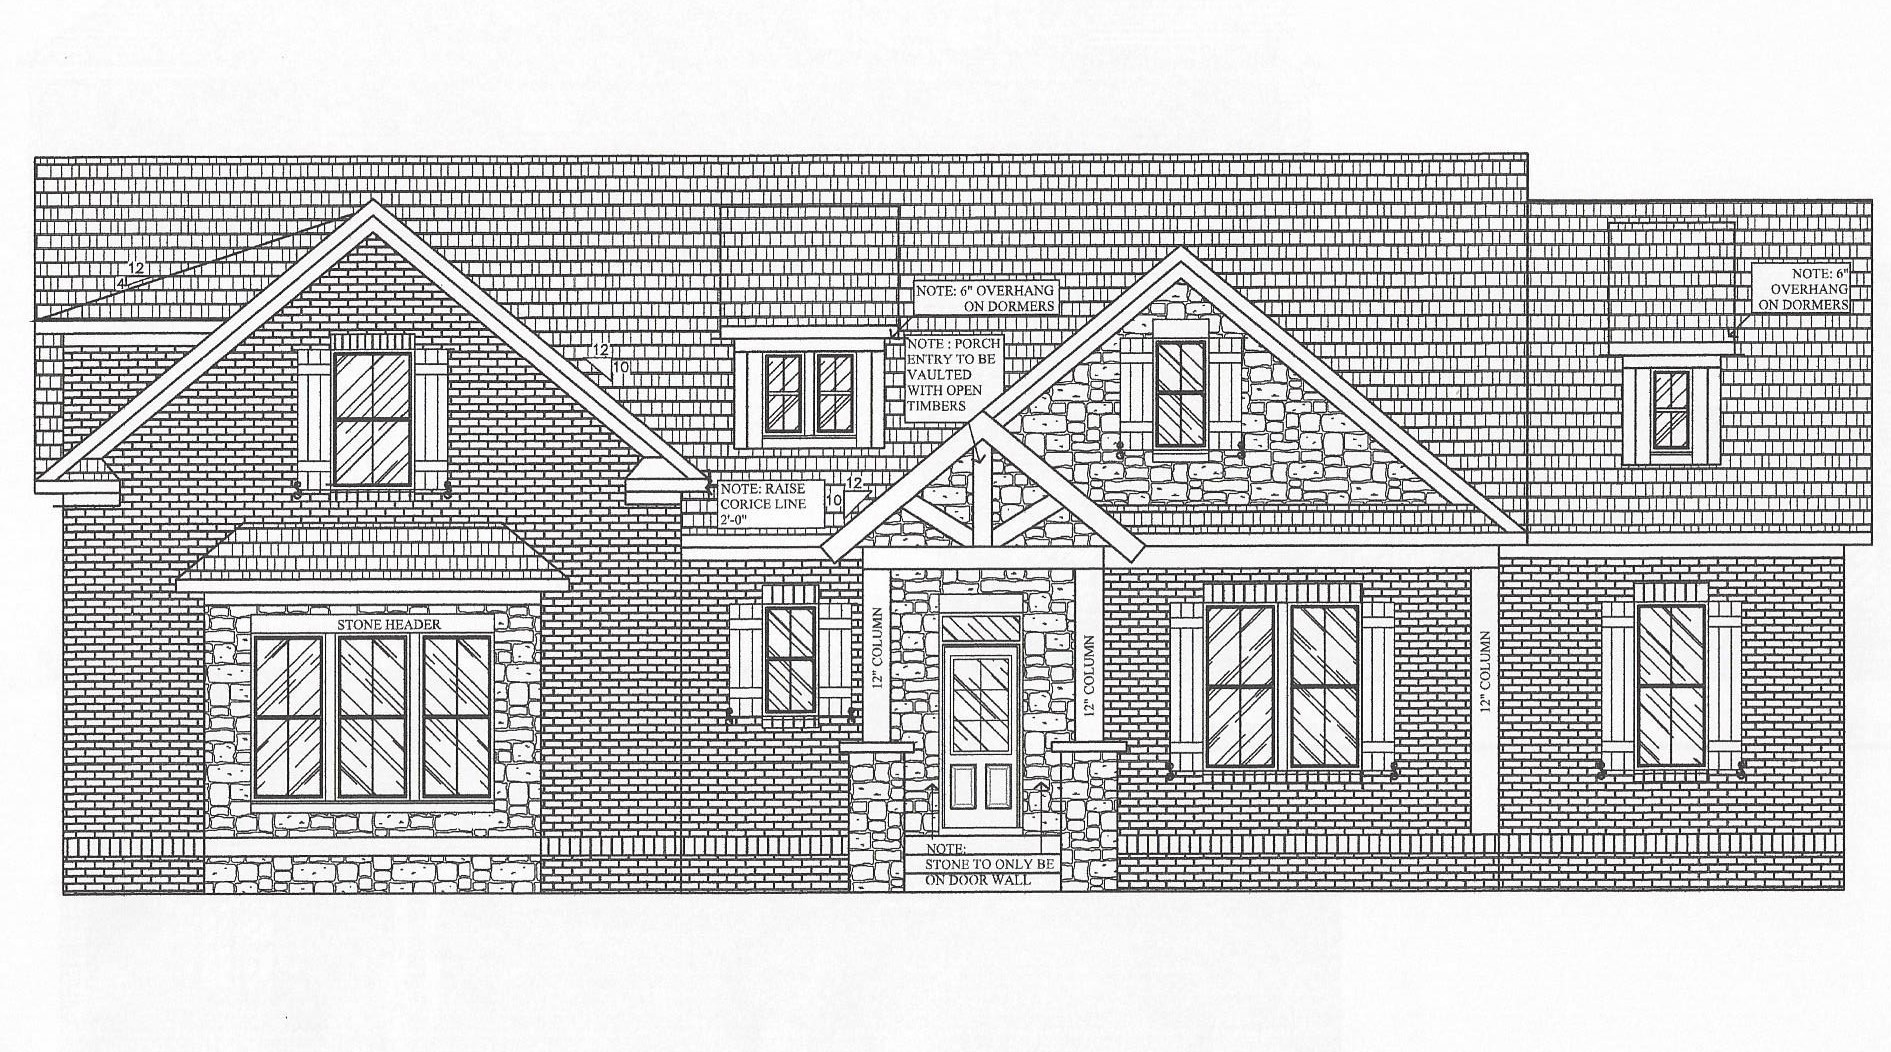 2005 Imagine Circle - LOT 3, Spring Hill, Tennessee